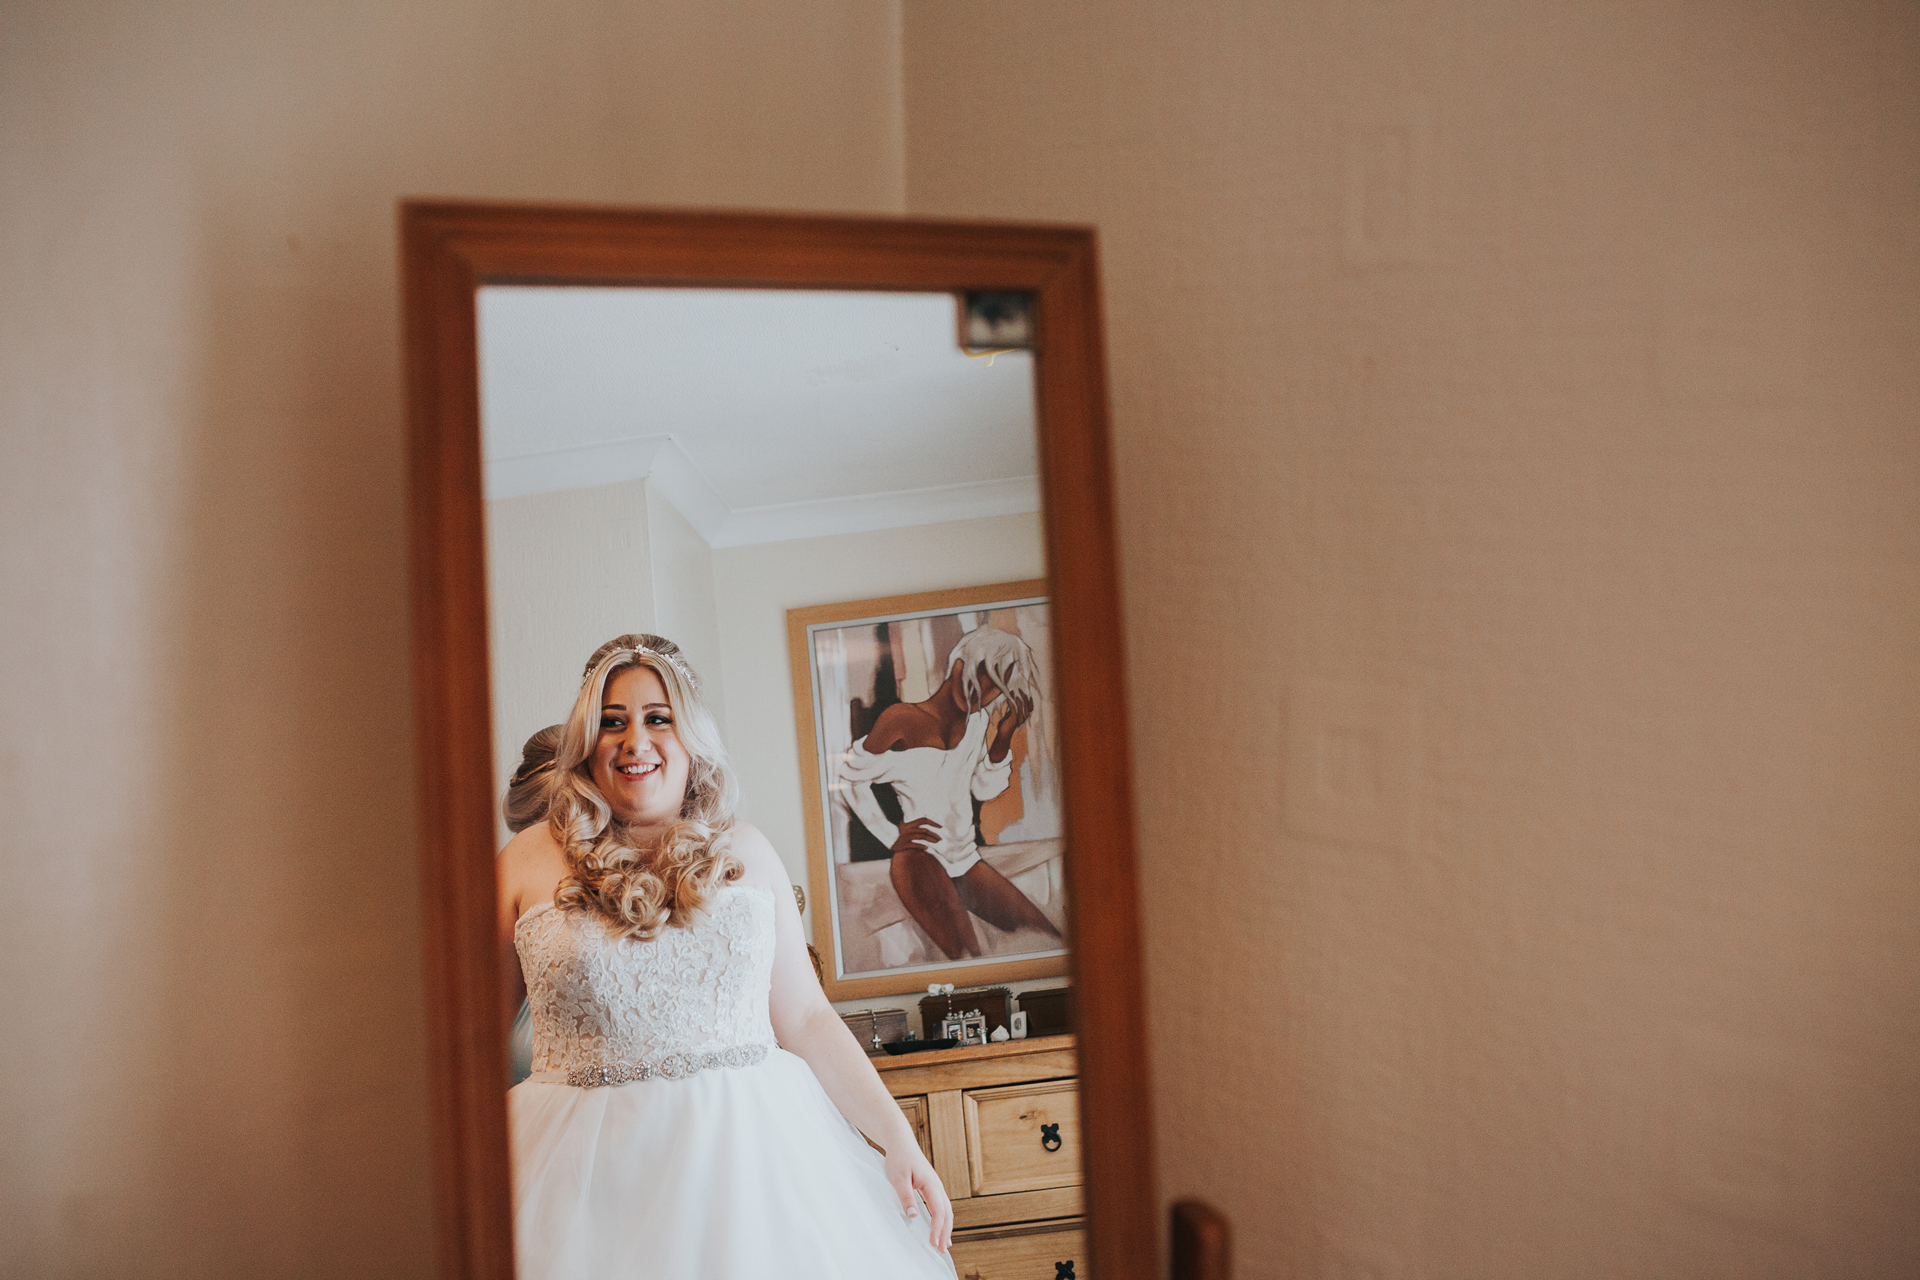 Brides reflection in the mirror as she wears her wedding dress.